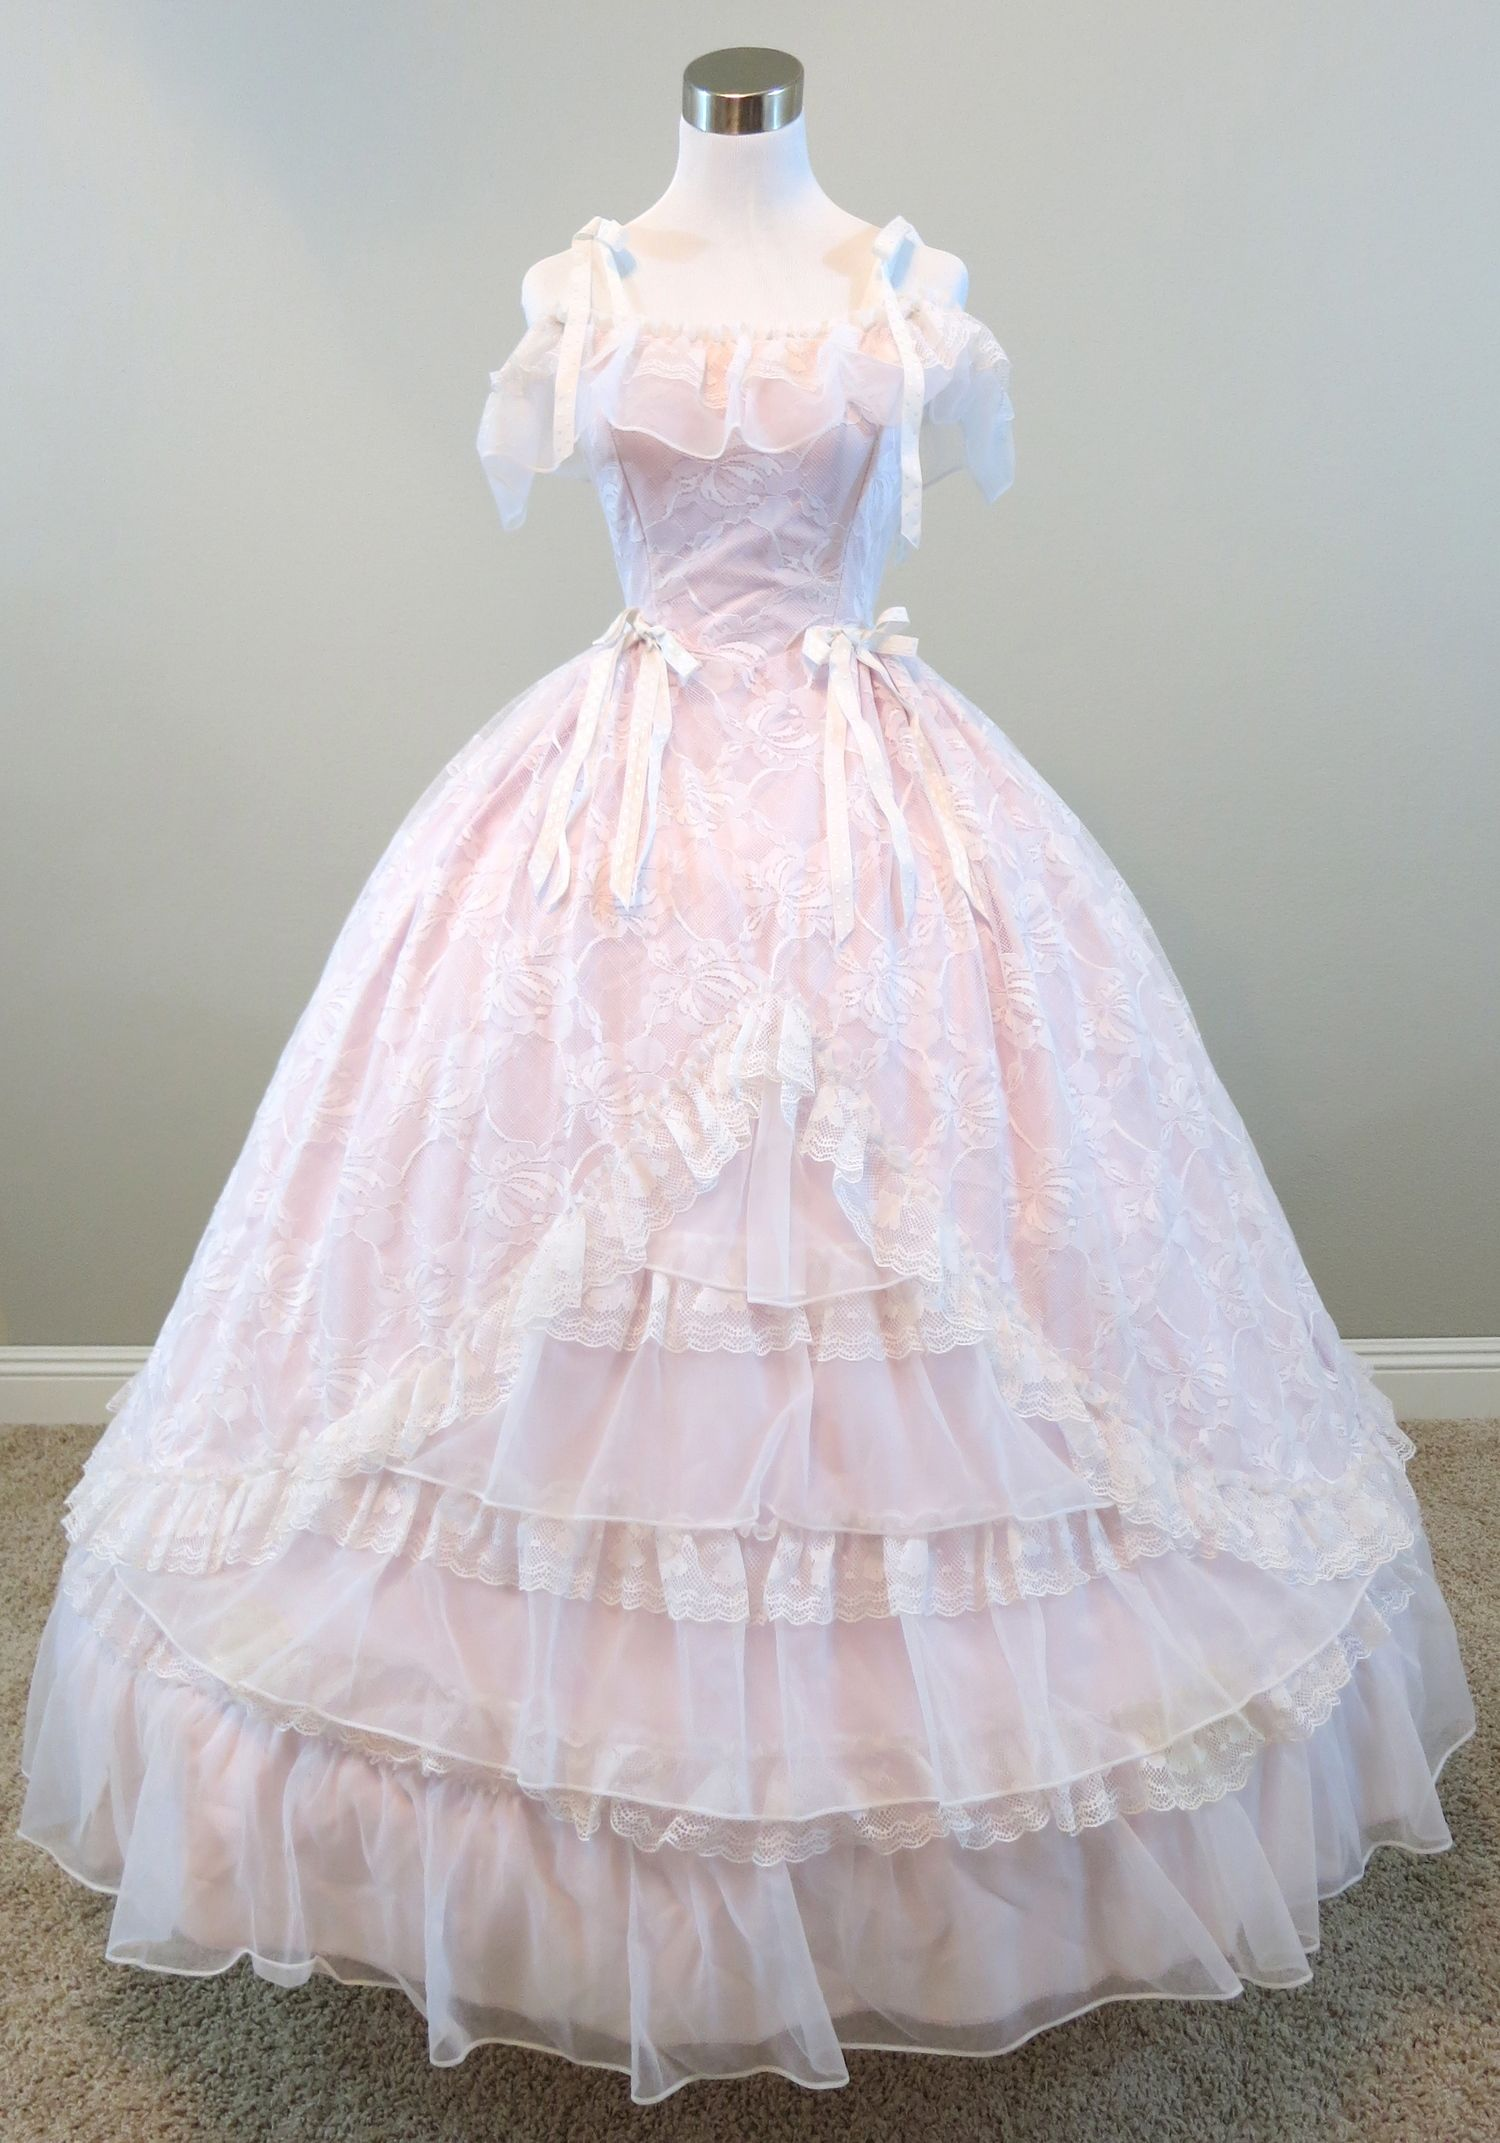 KA Old South Ball - Pink   White Lace Gown (waist - 26